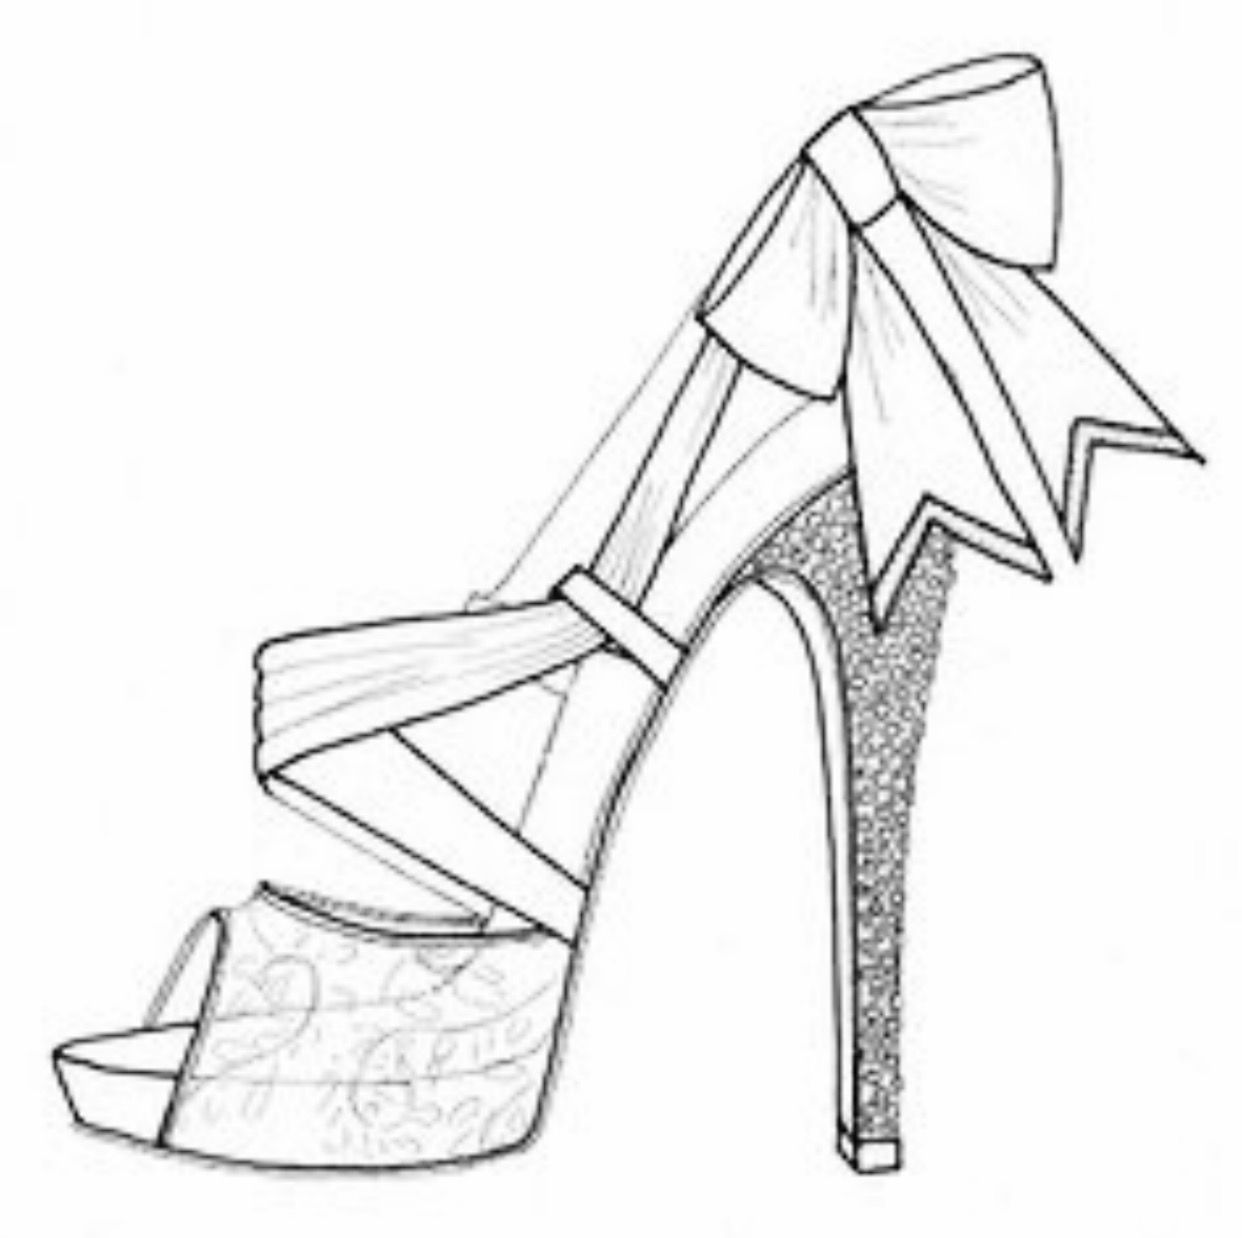 Pin by SoulBearingQuotes on Color My World   Shoe design ...